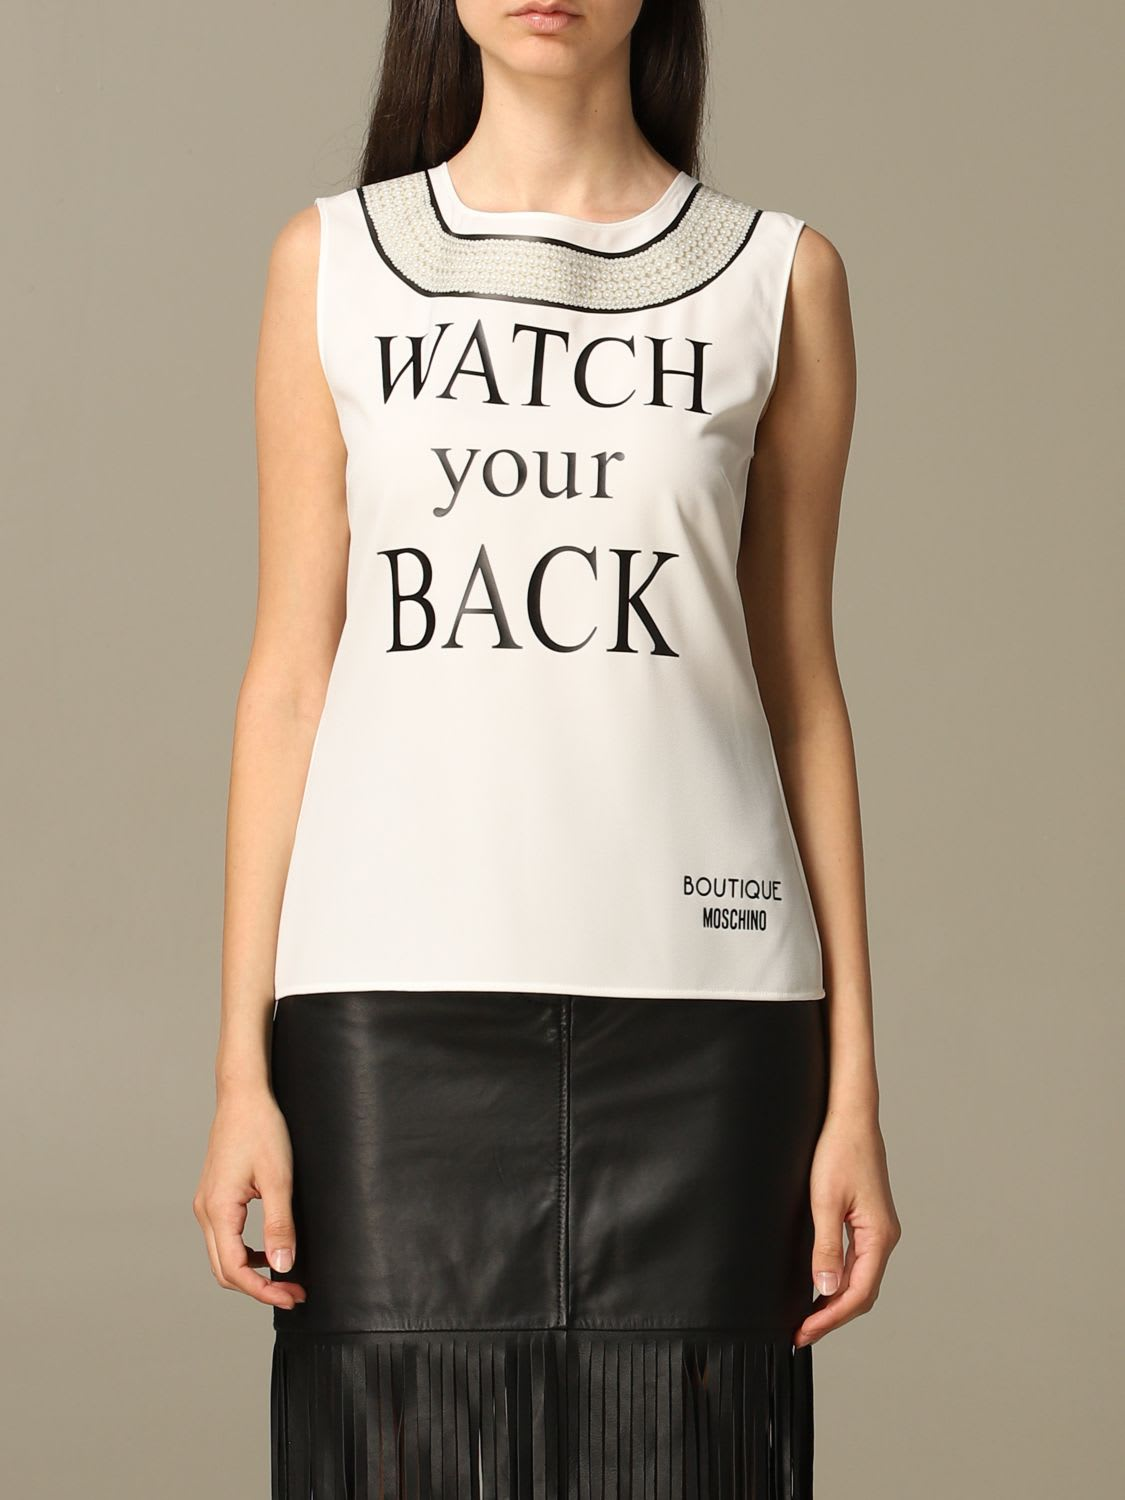 Boutique Moschino Top Top Watch Your Back Boutique Moschino